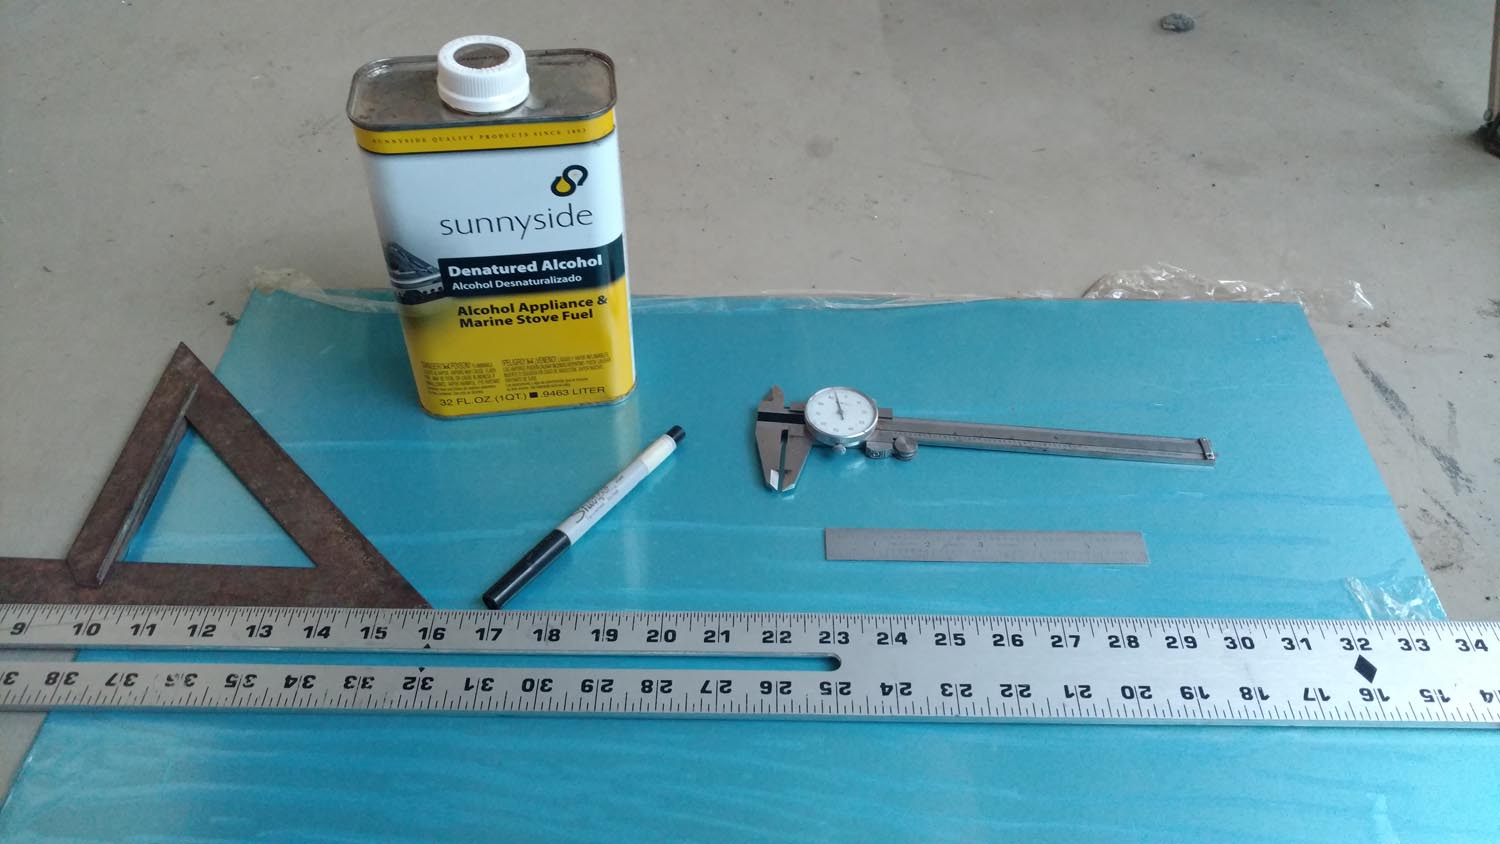 Tools and Supplies Used in the Layout Process